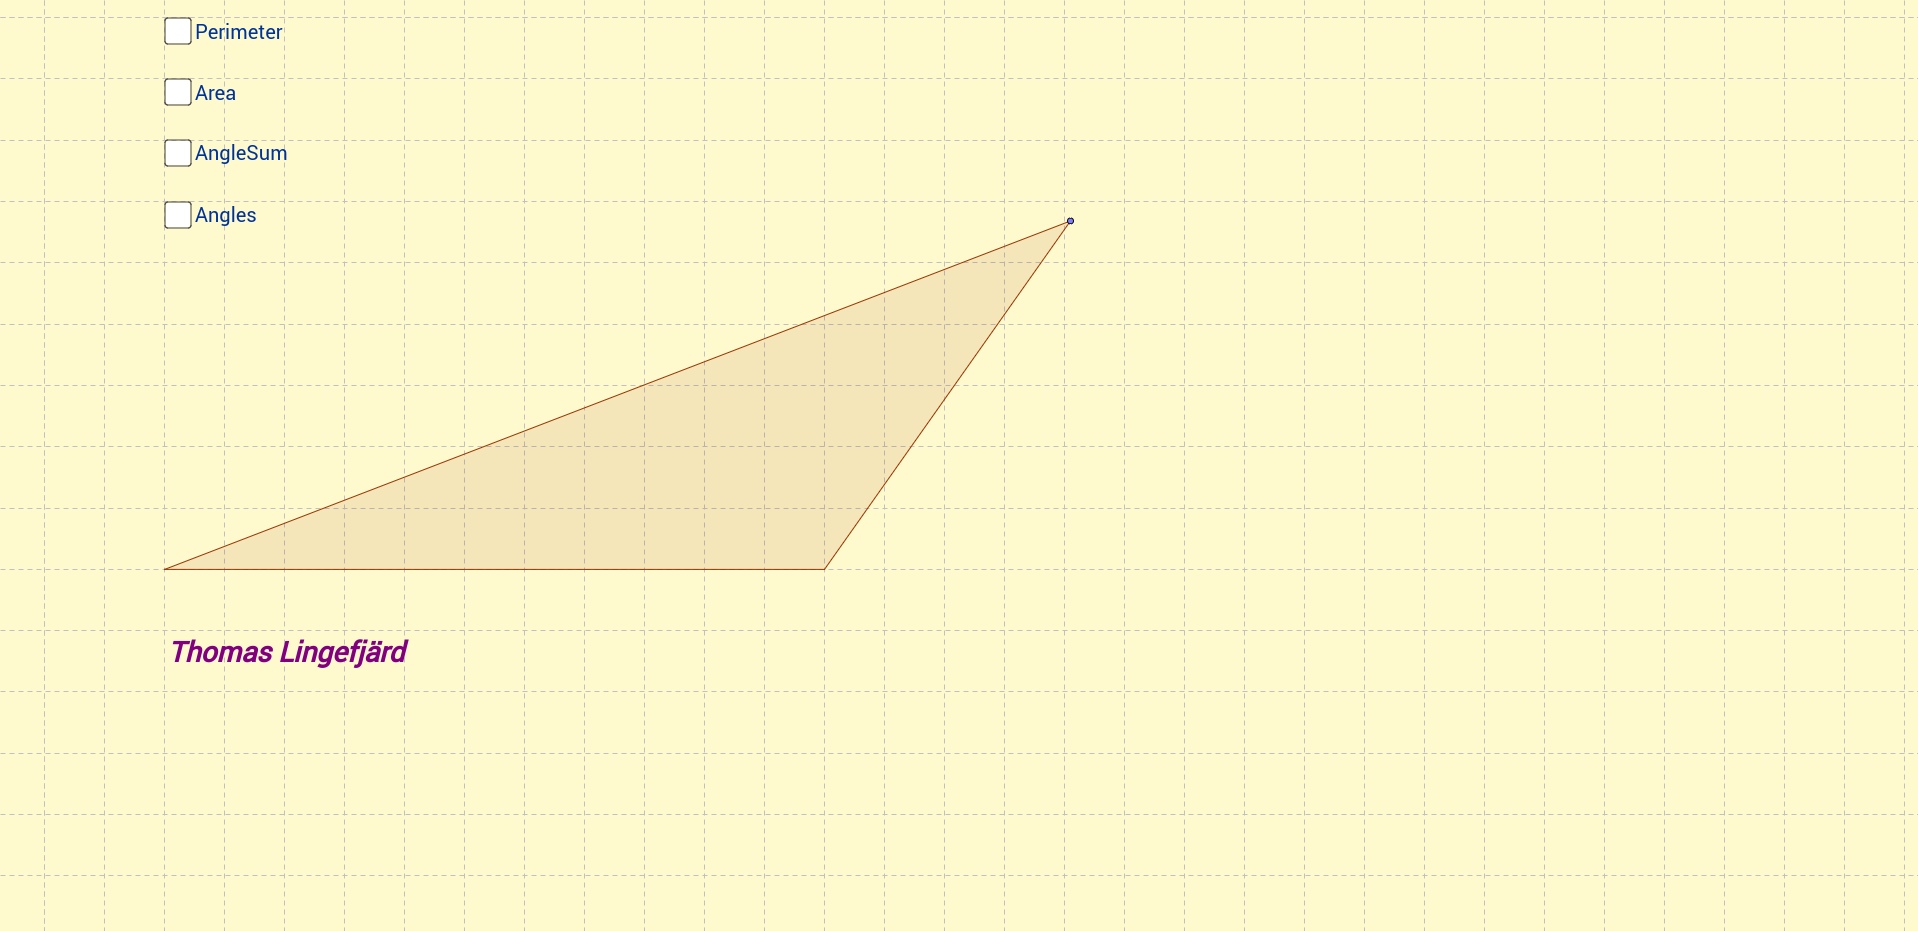 Triangle with fixed perimeter